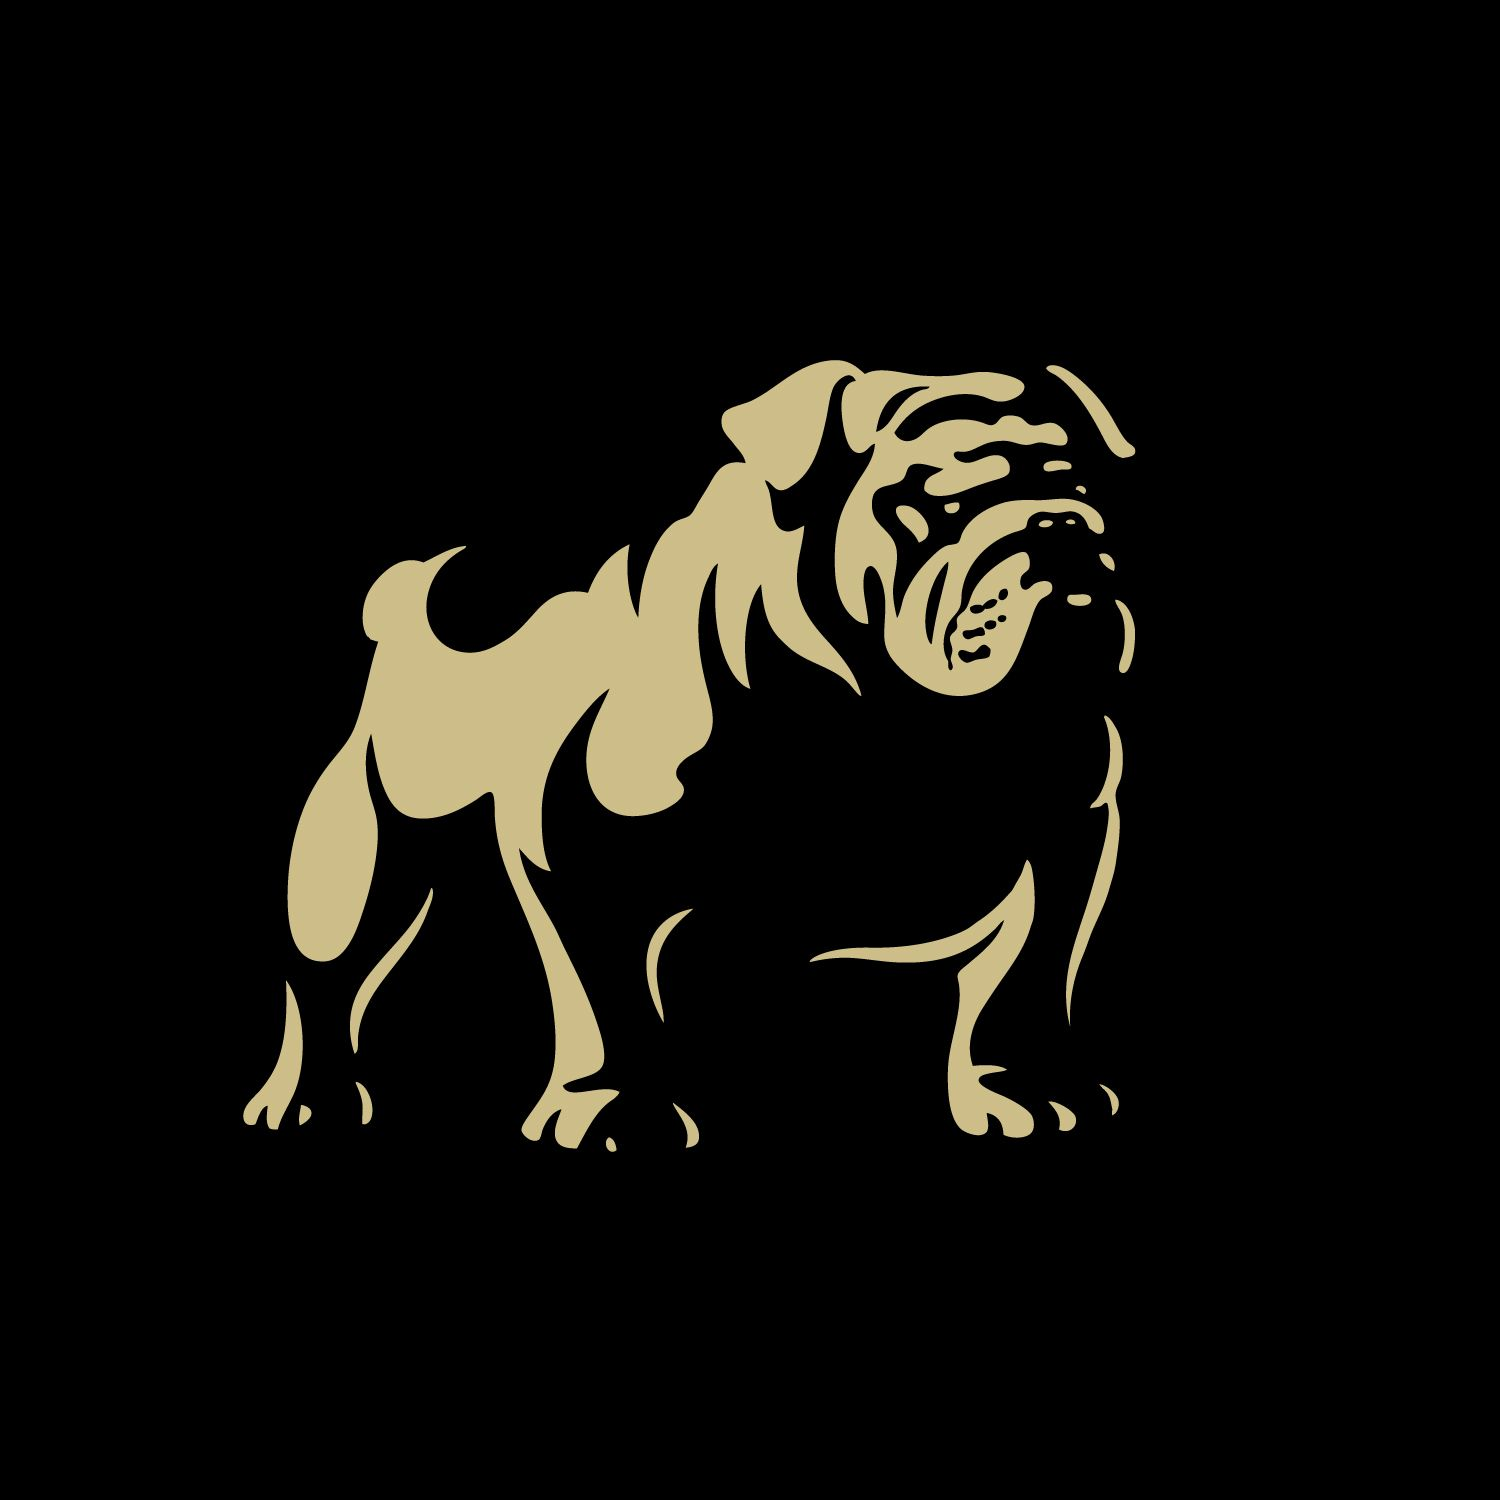 United Design Bulldog Logo Bulldog Art Bulldog Mascot Dog